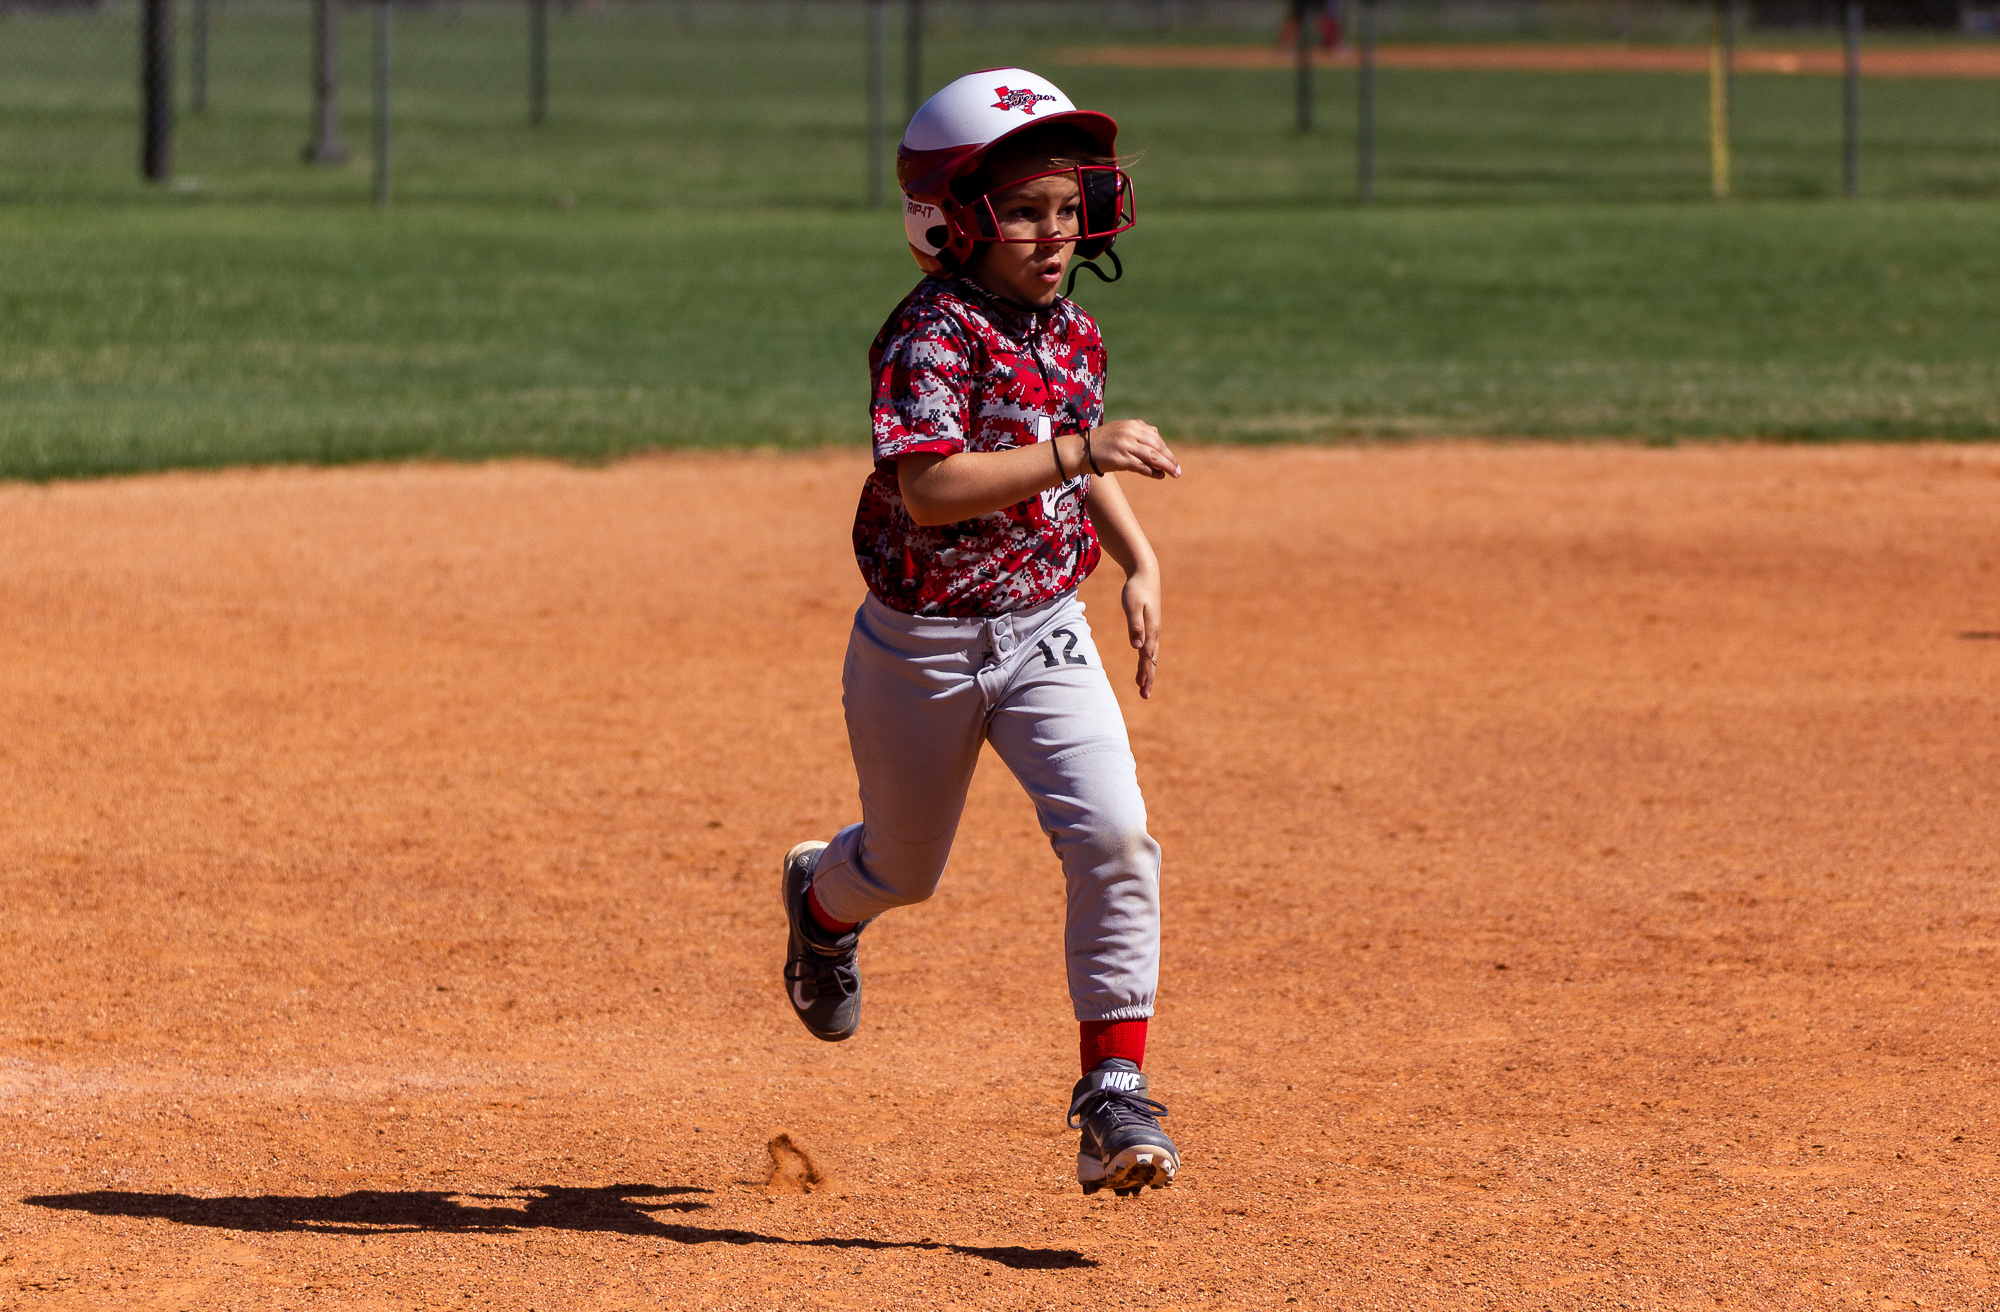 Young girl running the bases during a softball game